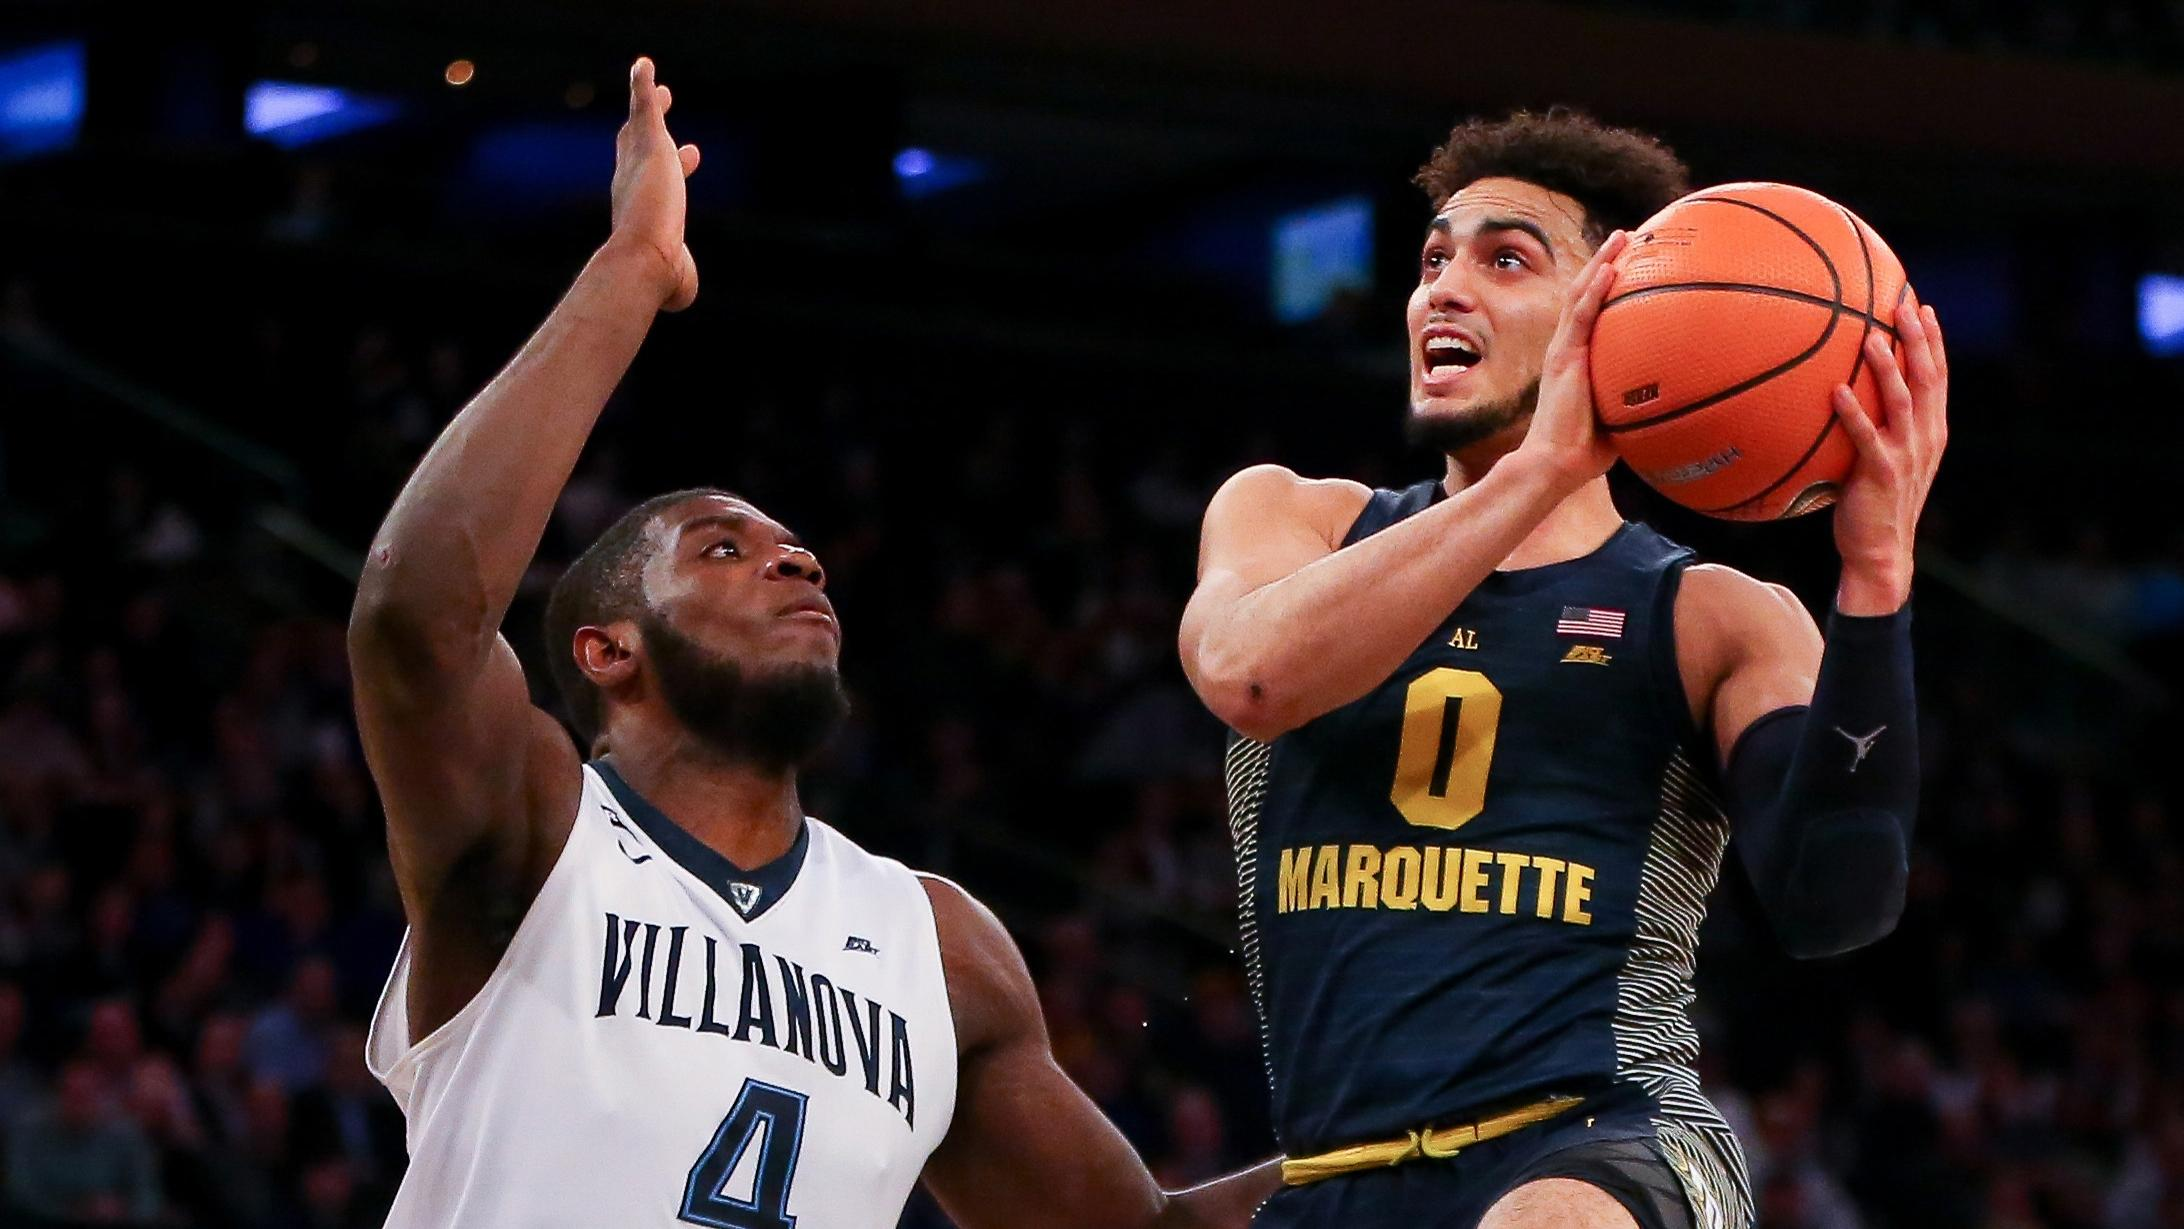 Marquette guard Markus Howard drives to the rim